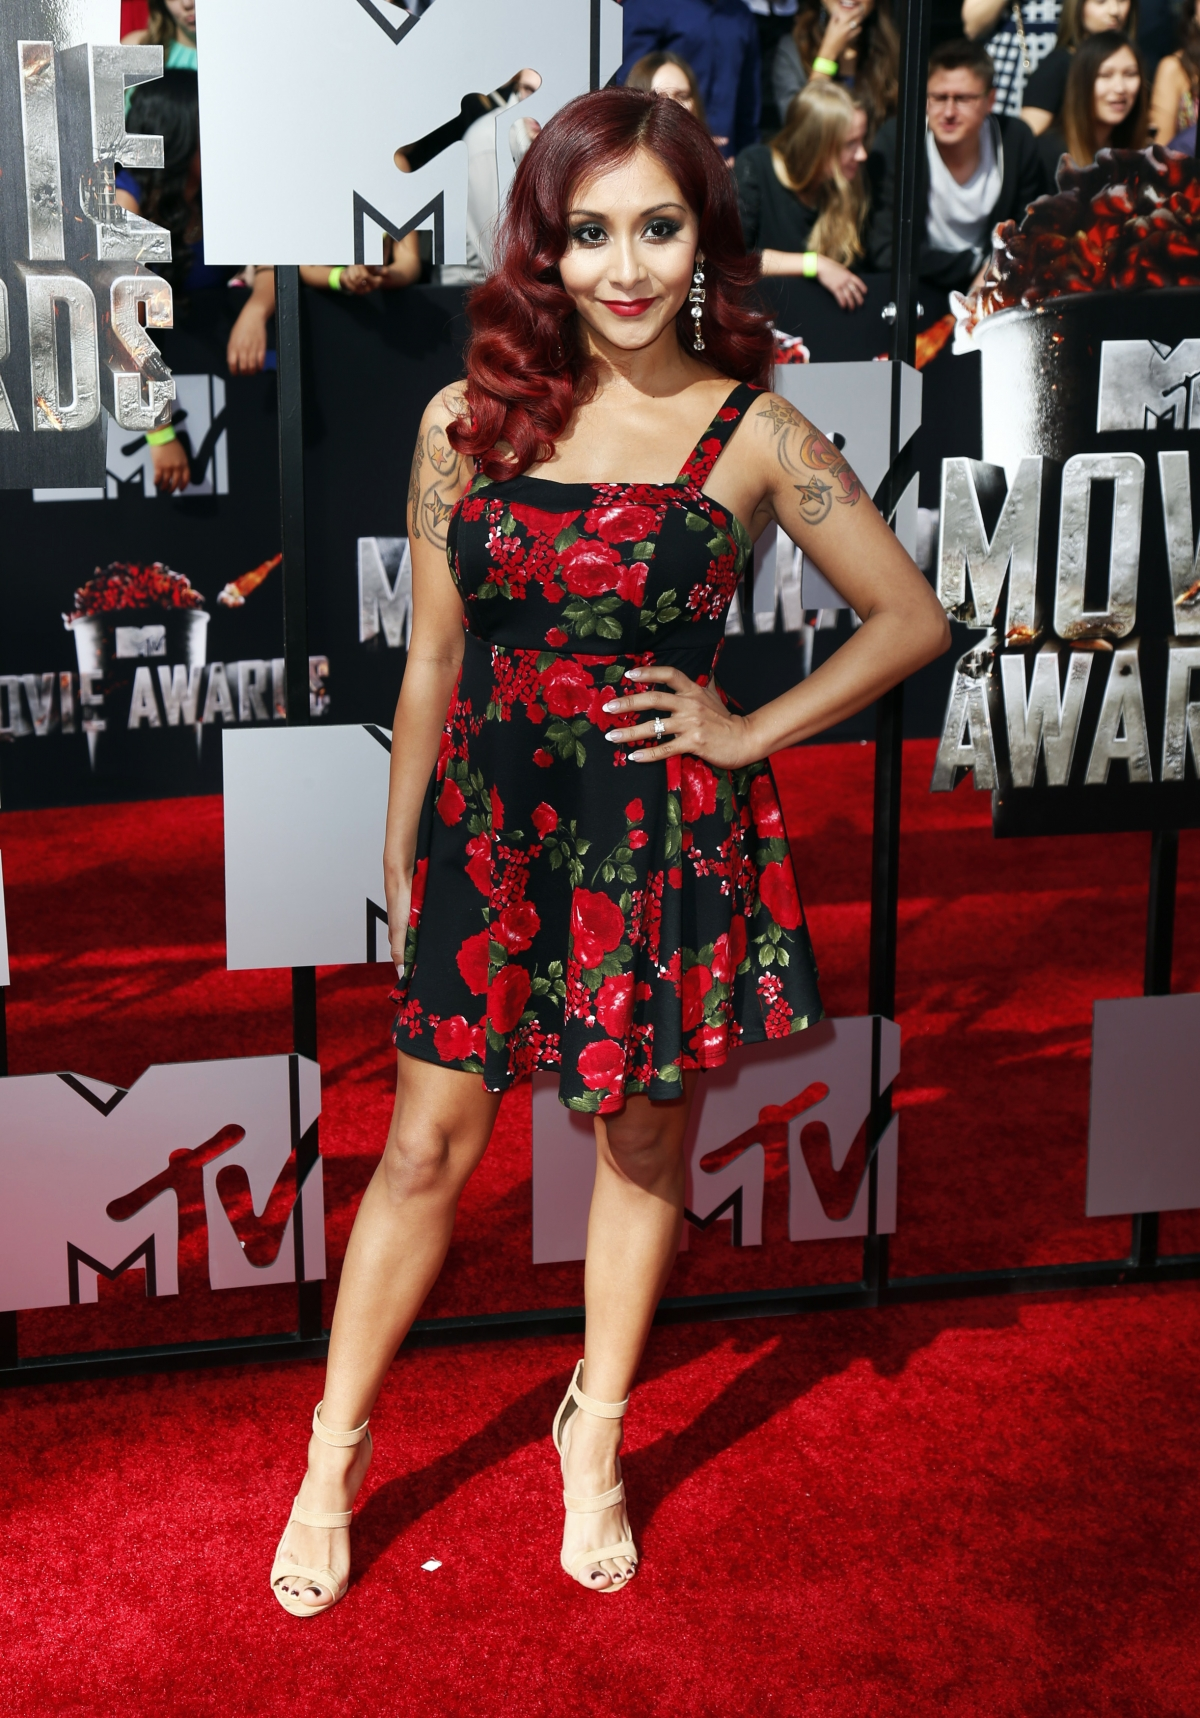 Snooki arrives at the 2014 MTV Movie Awards in Los Angeles, California.